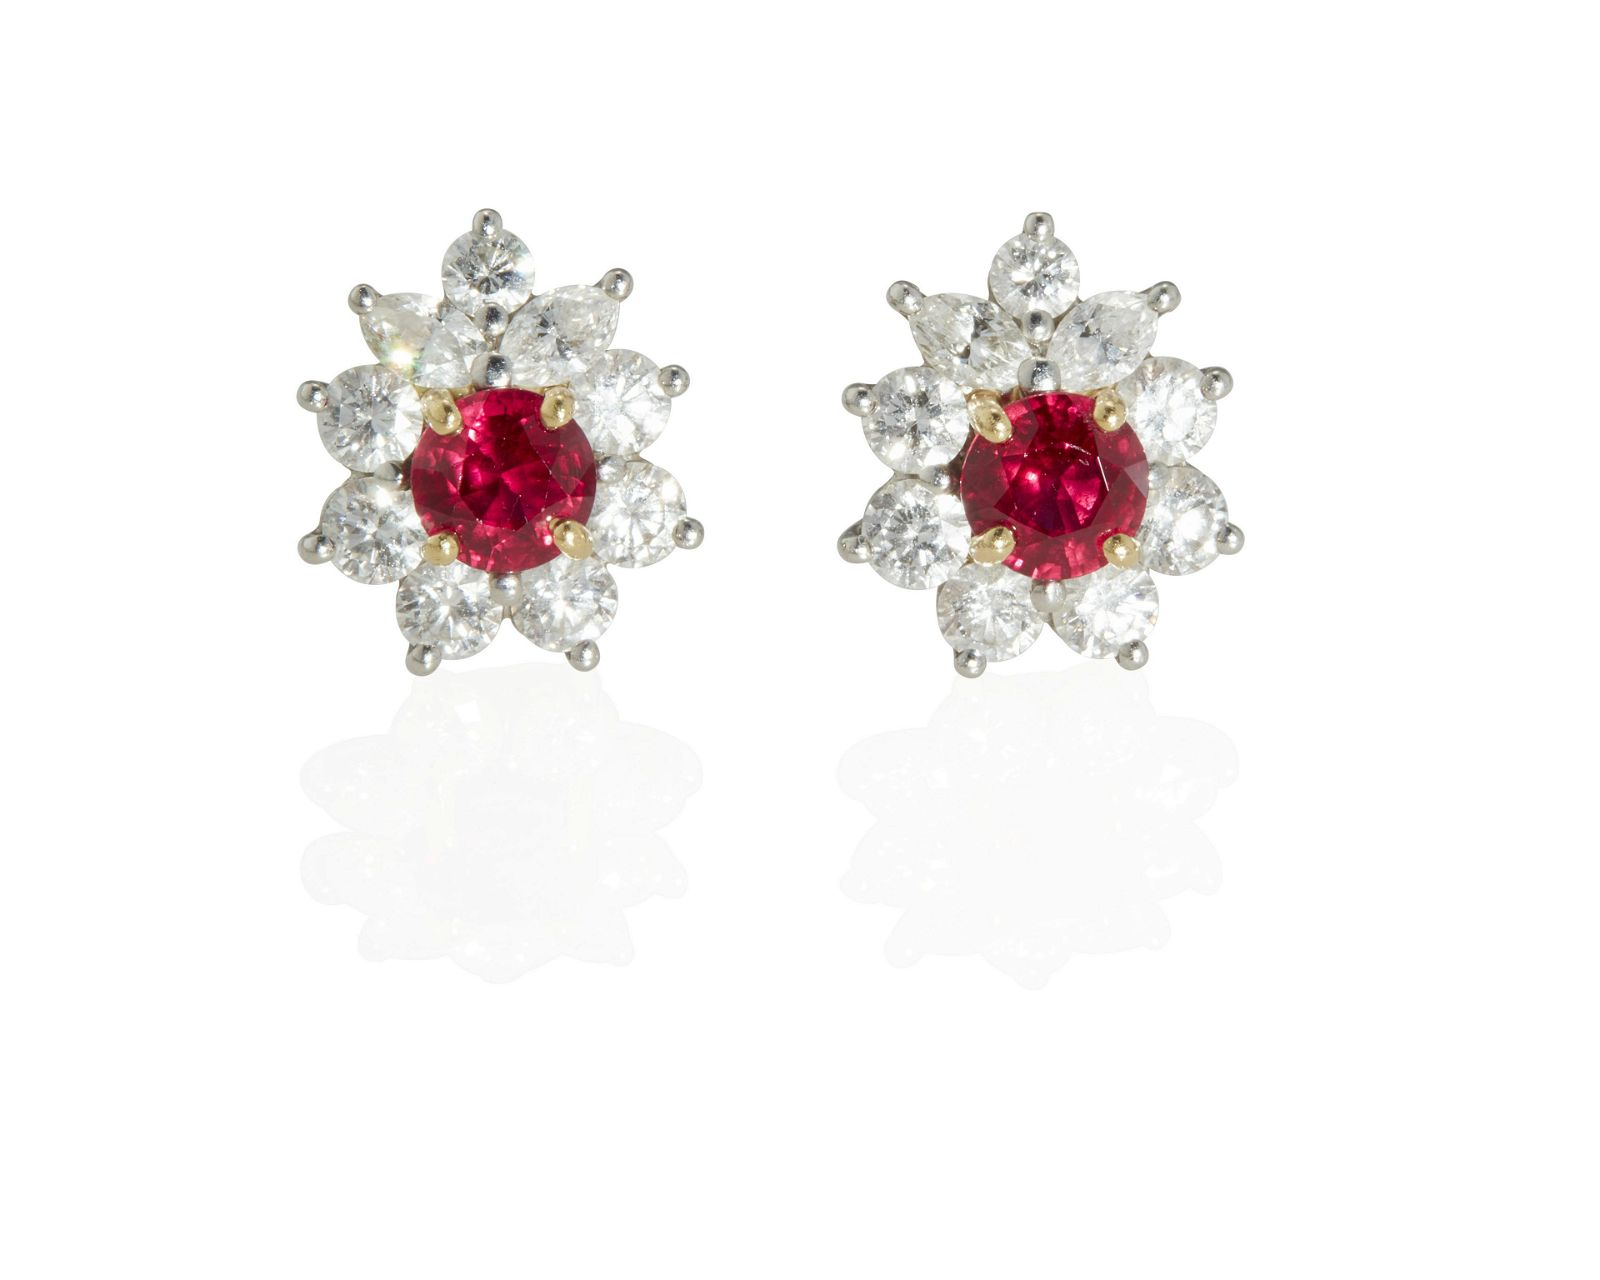 A pair of Tiffany & Co. ruby and diamond ear studs